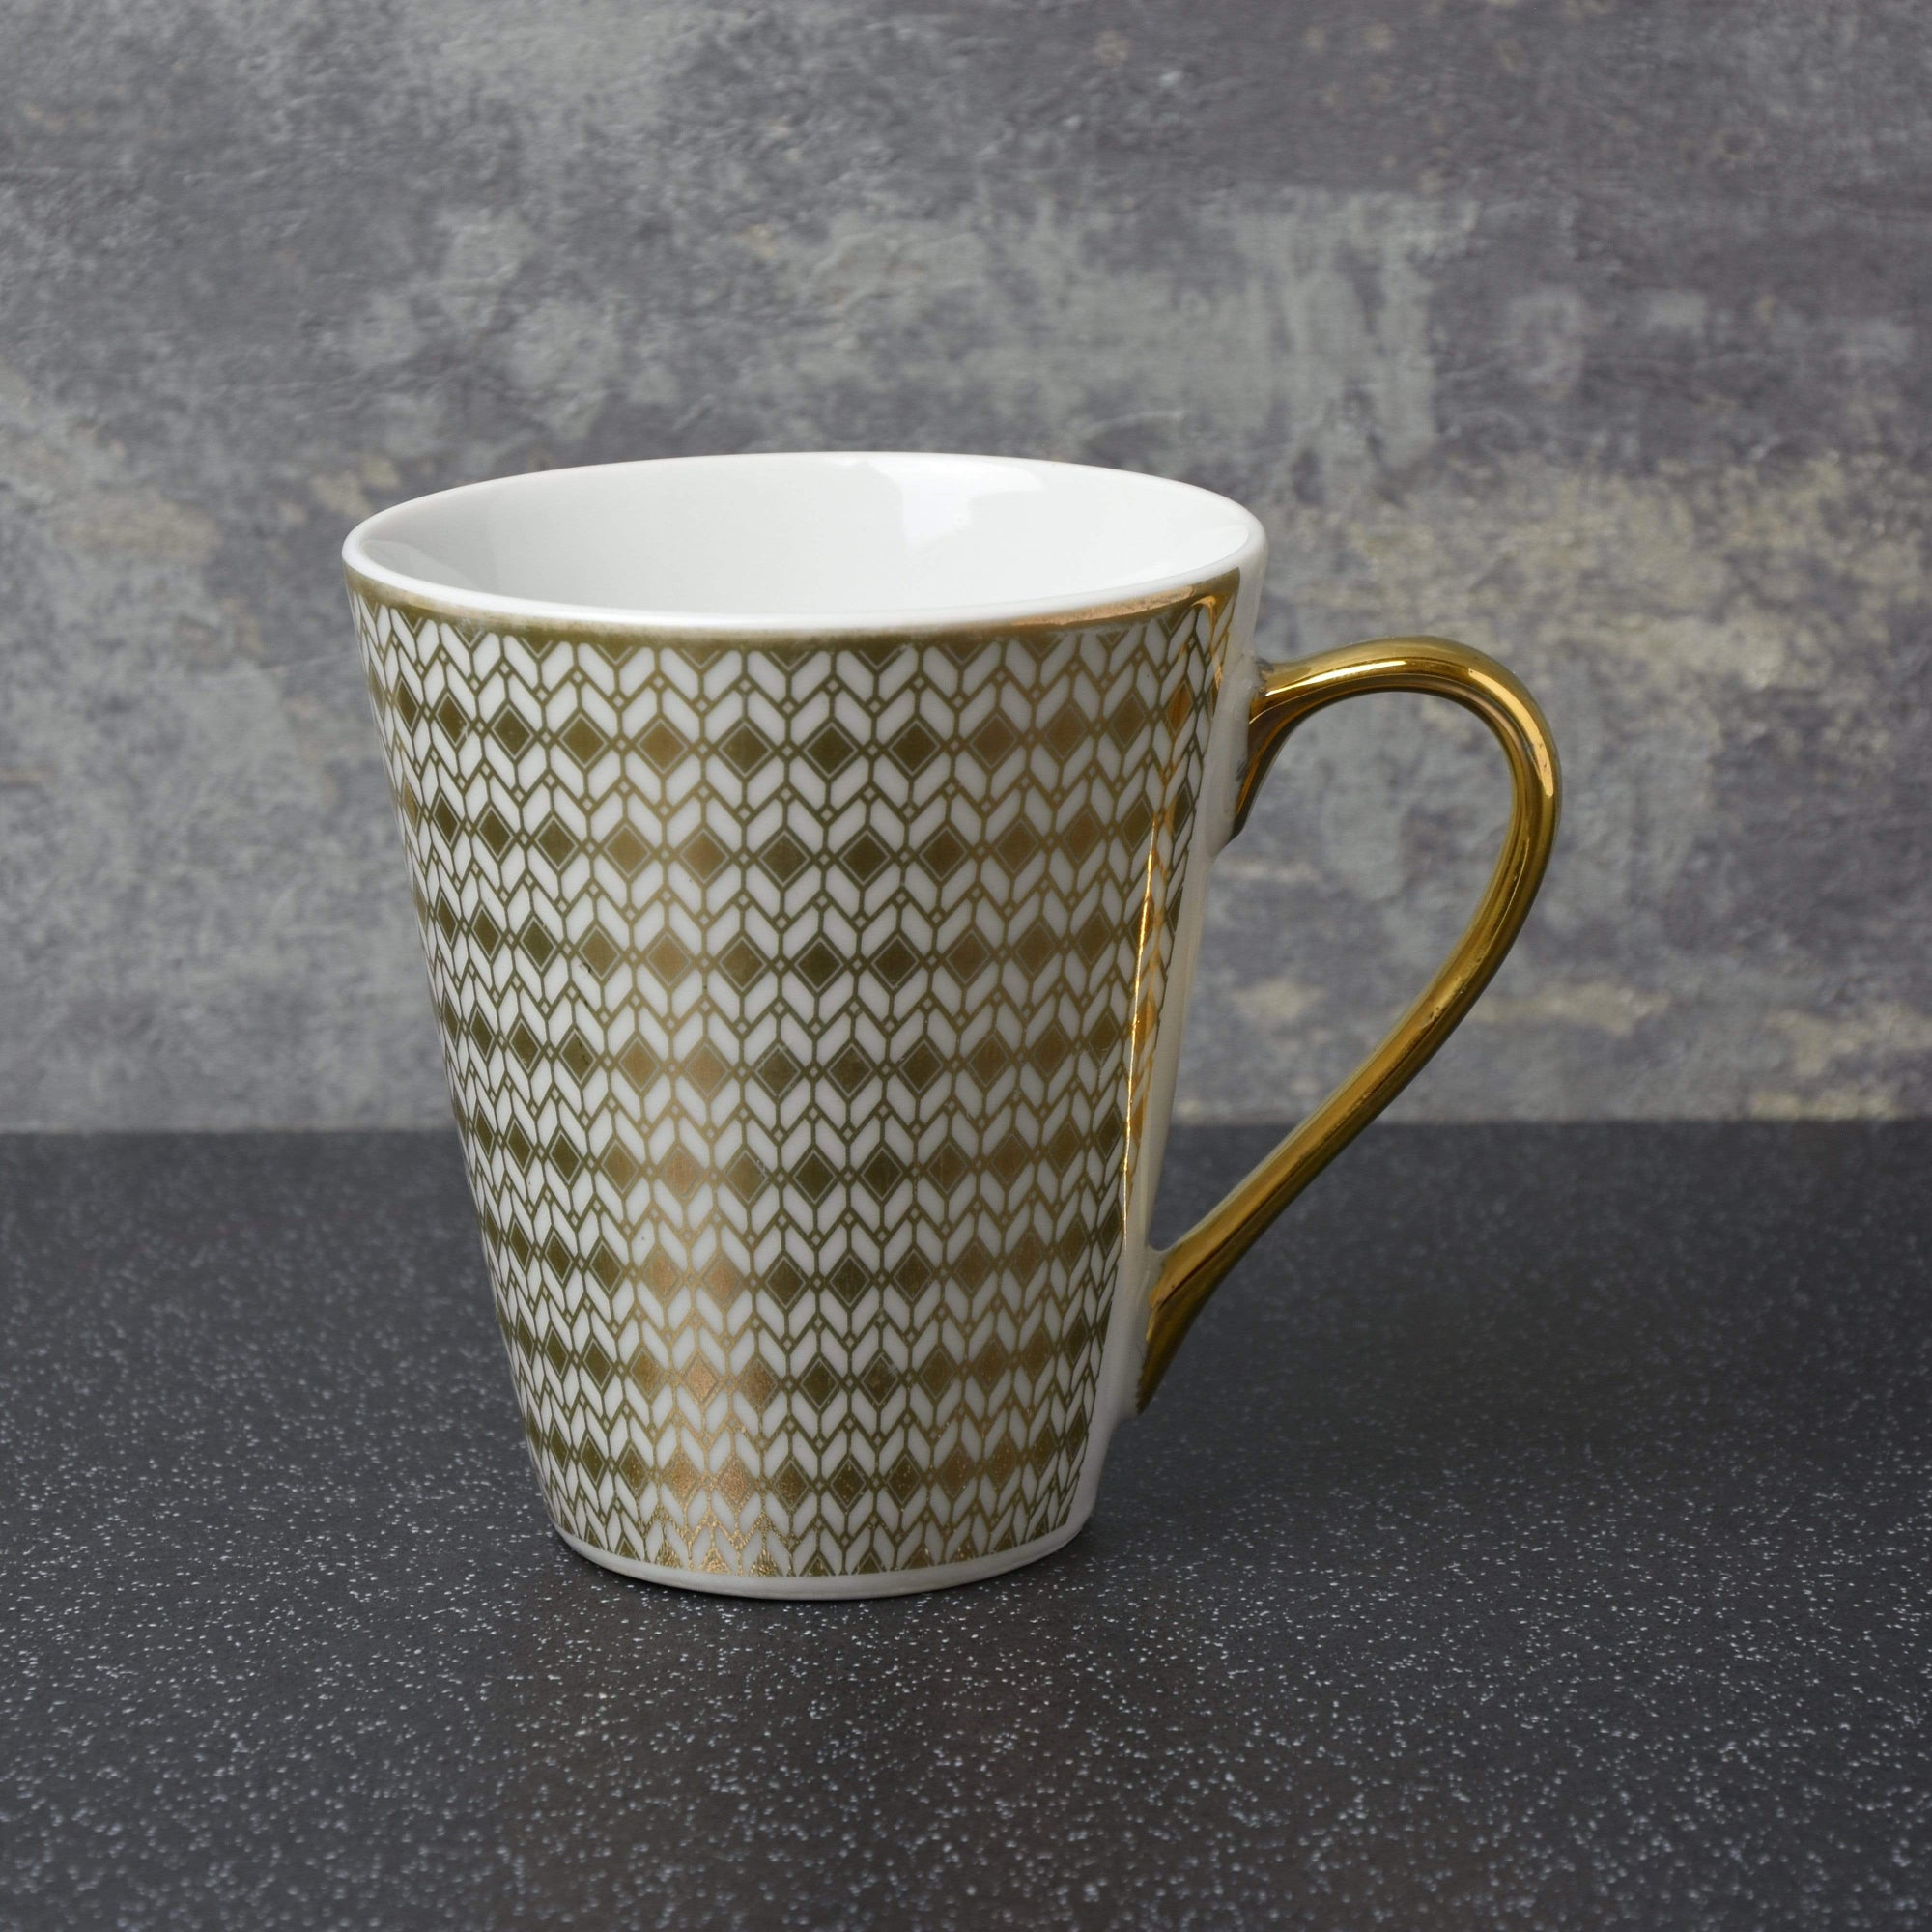 Conical Mug with Geometric Design White and Gold 6PK